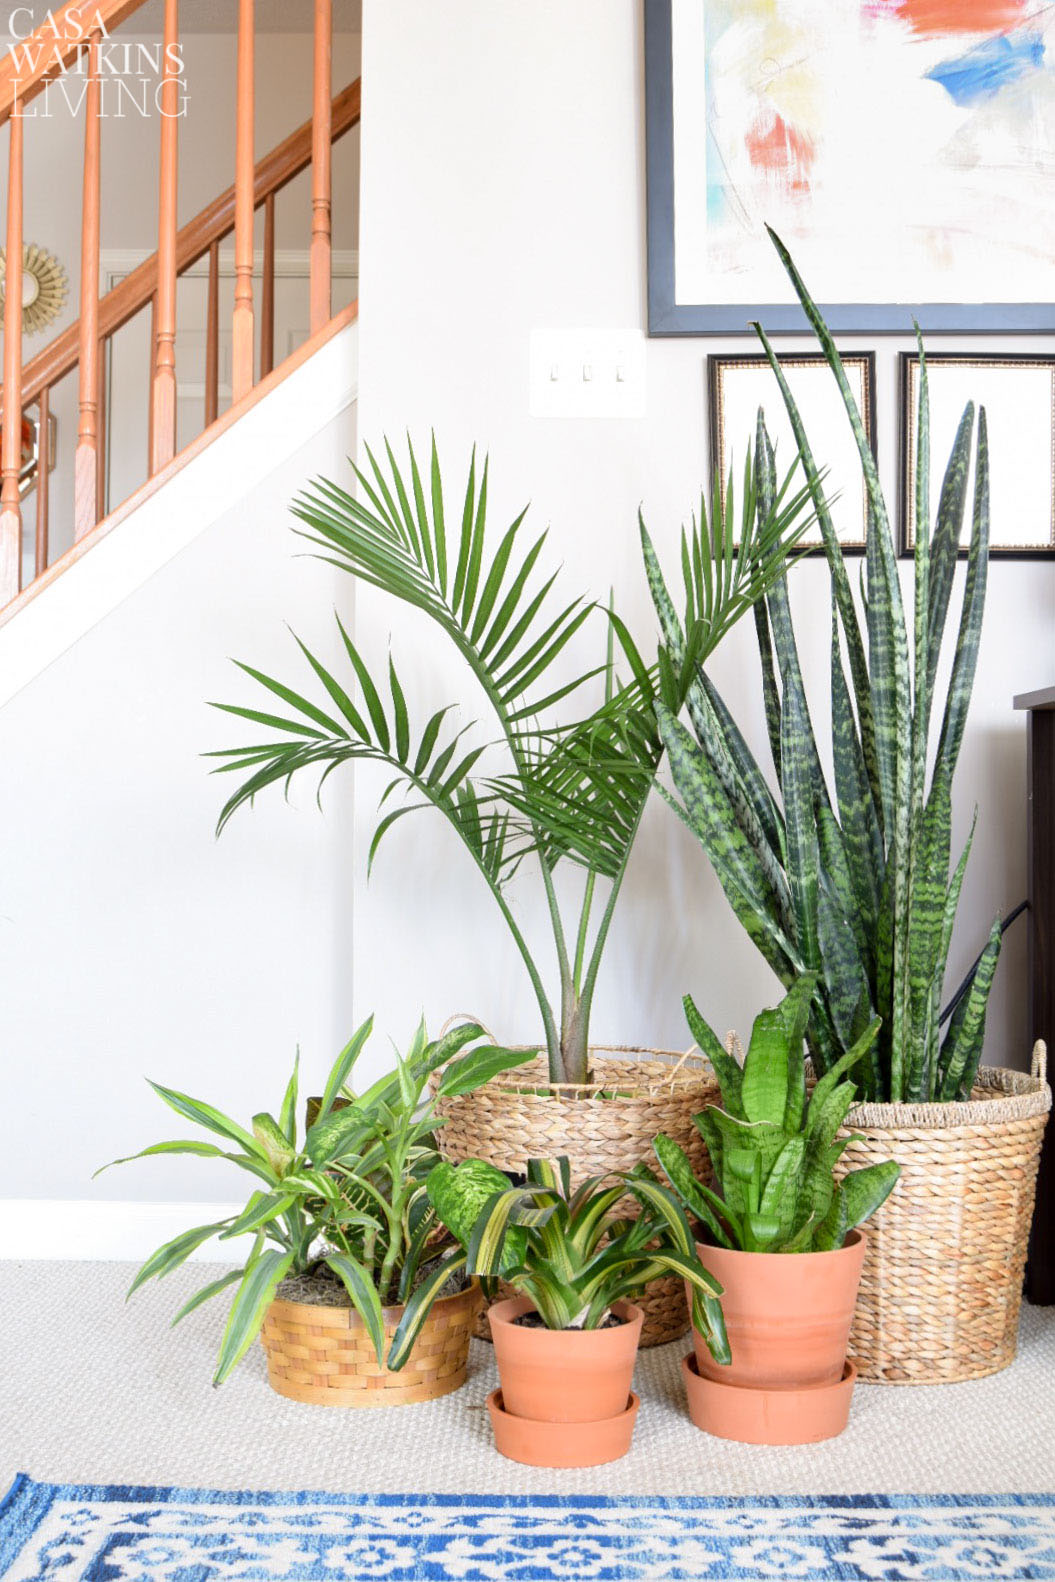 Use large woven baskets for house plant planters